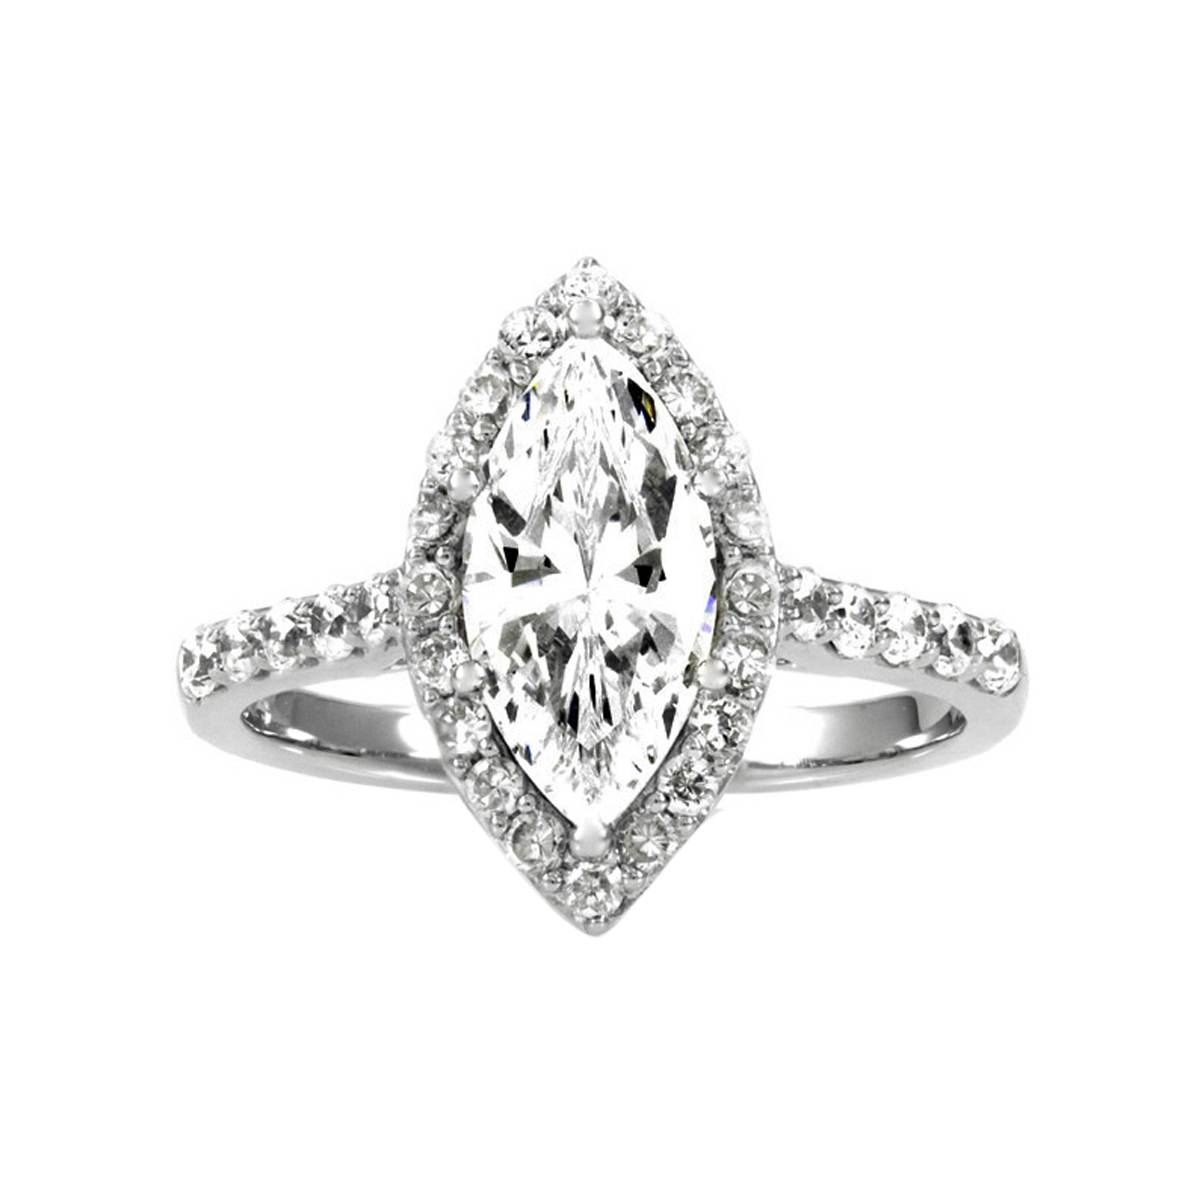 Amusing Cz Engagement Ring Amazon Tags : Engagement Ring Cz Two Throughout Cz Diamond Wedding Rings (View 5 of 15)